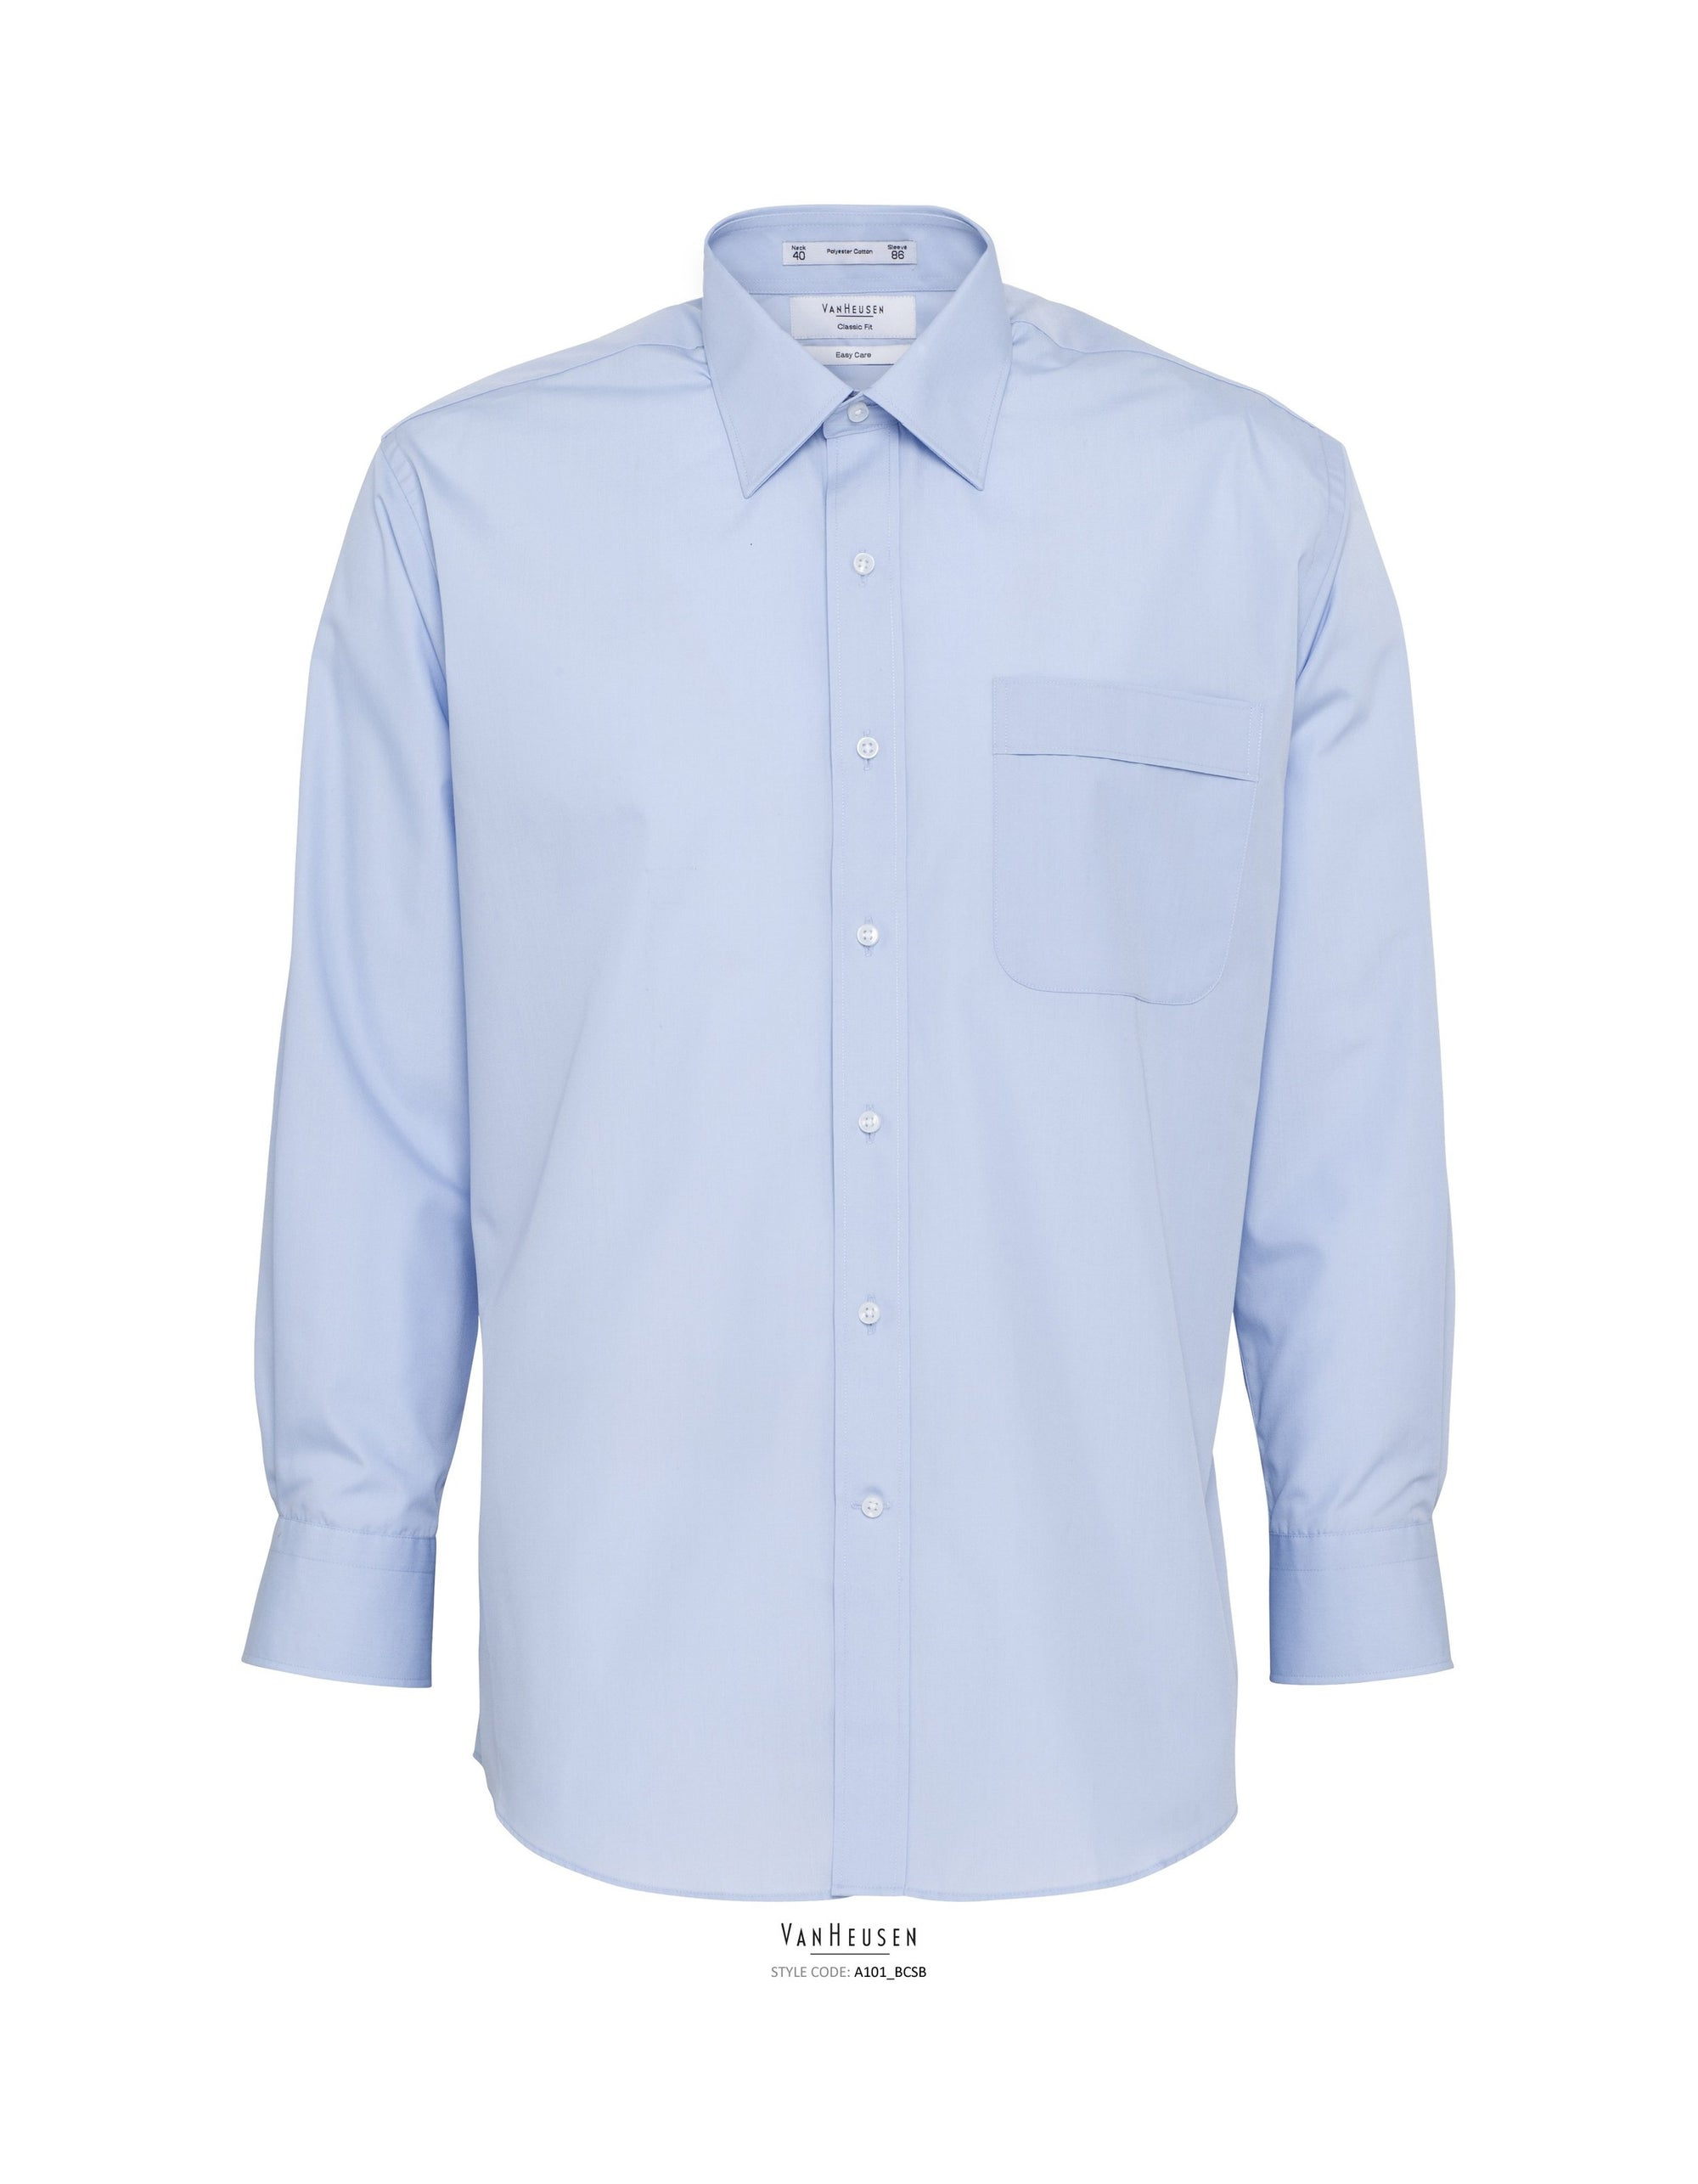 van heusen mens long sleeve shirts-a101